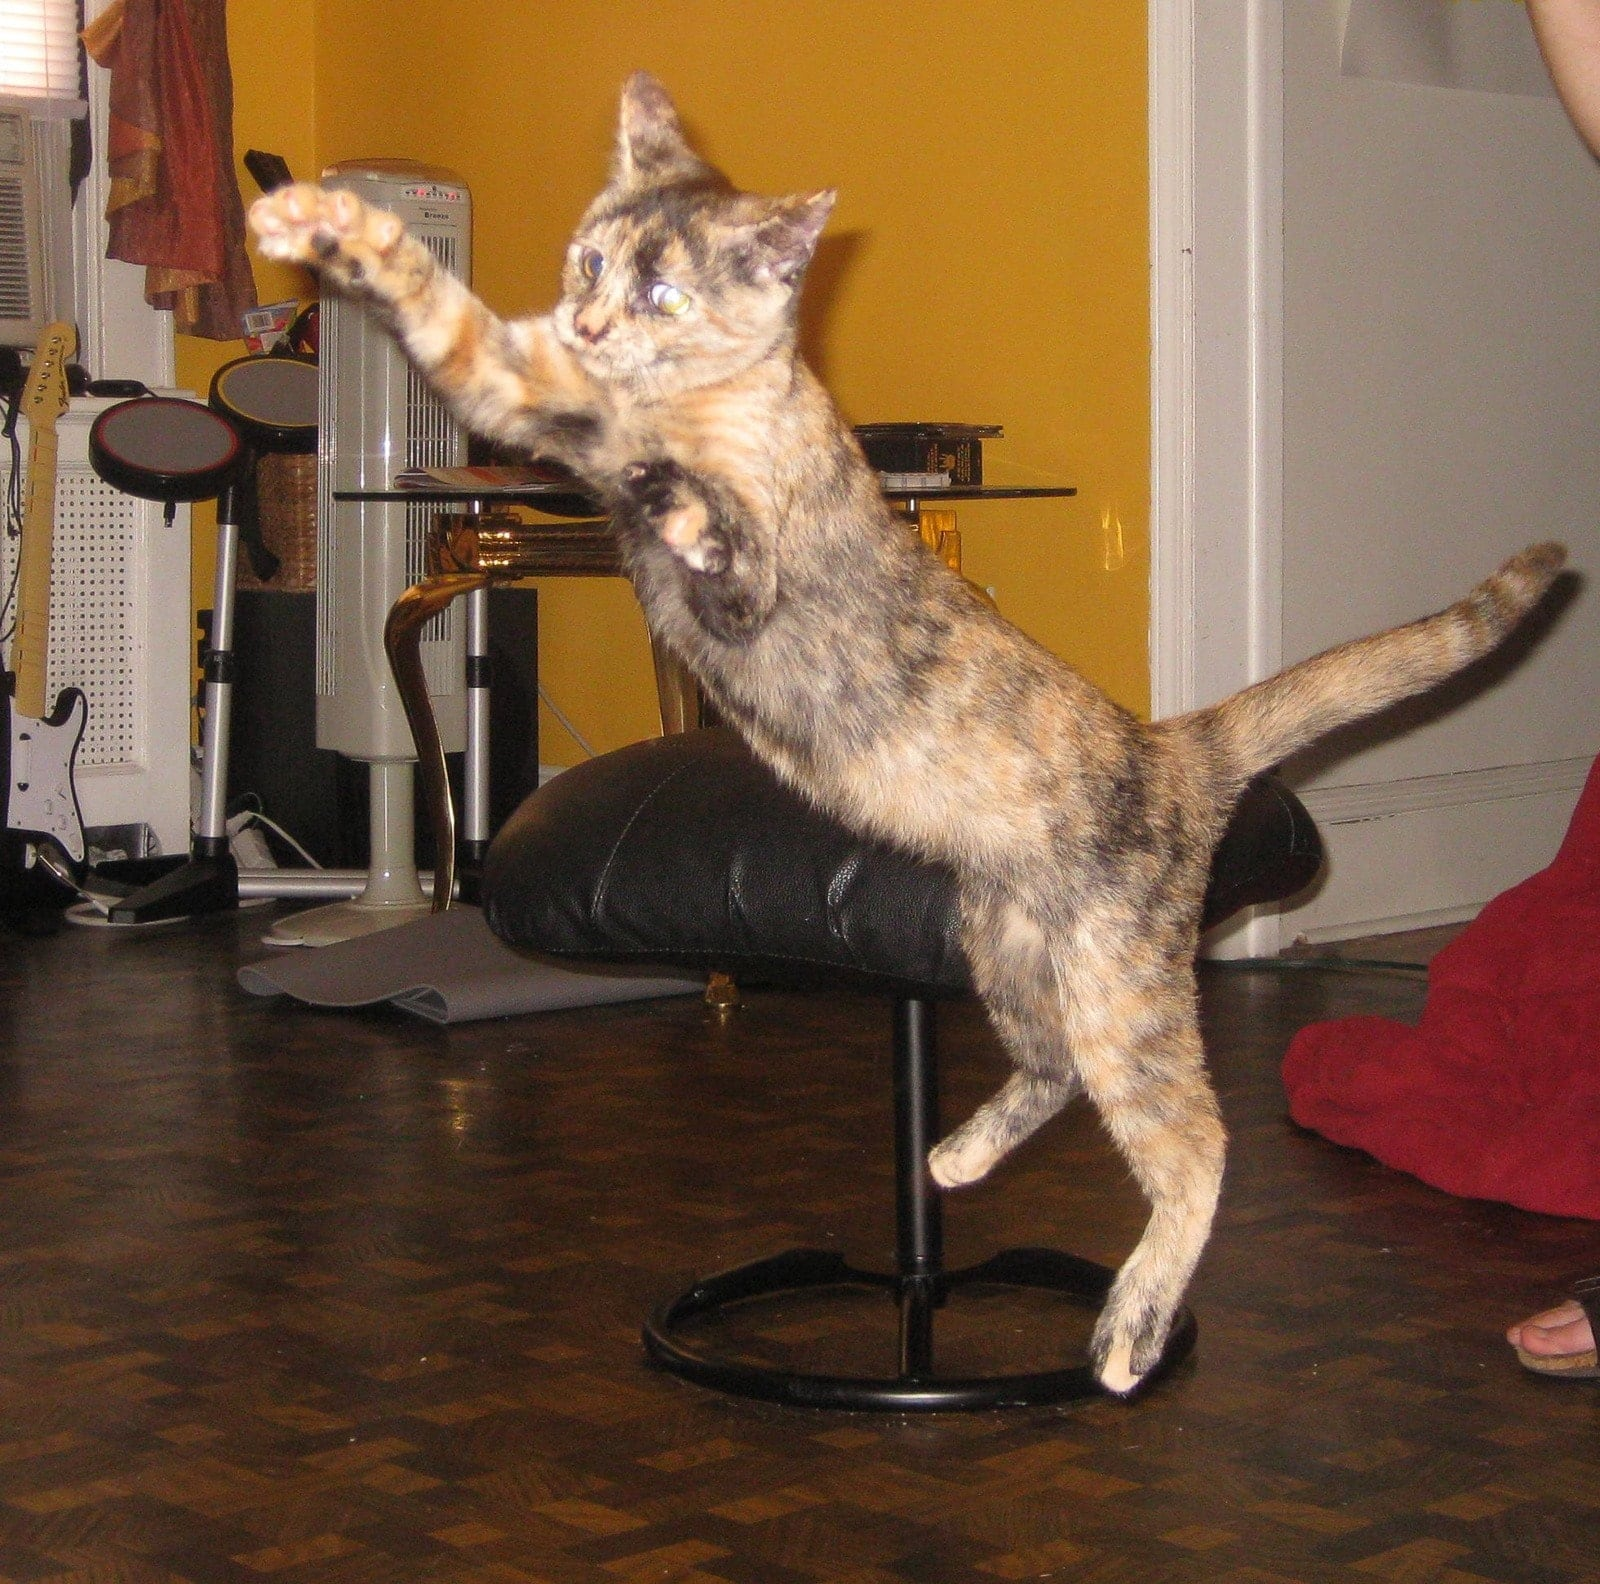 Leela as a kitten jumping in the air